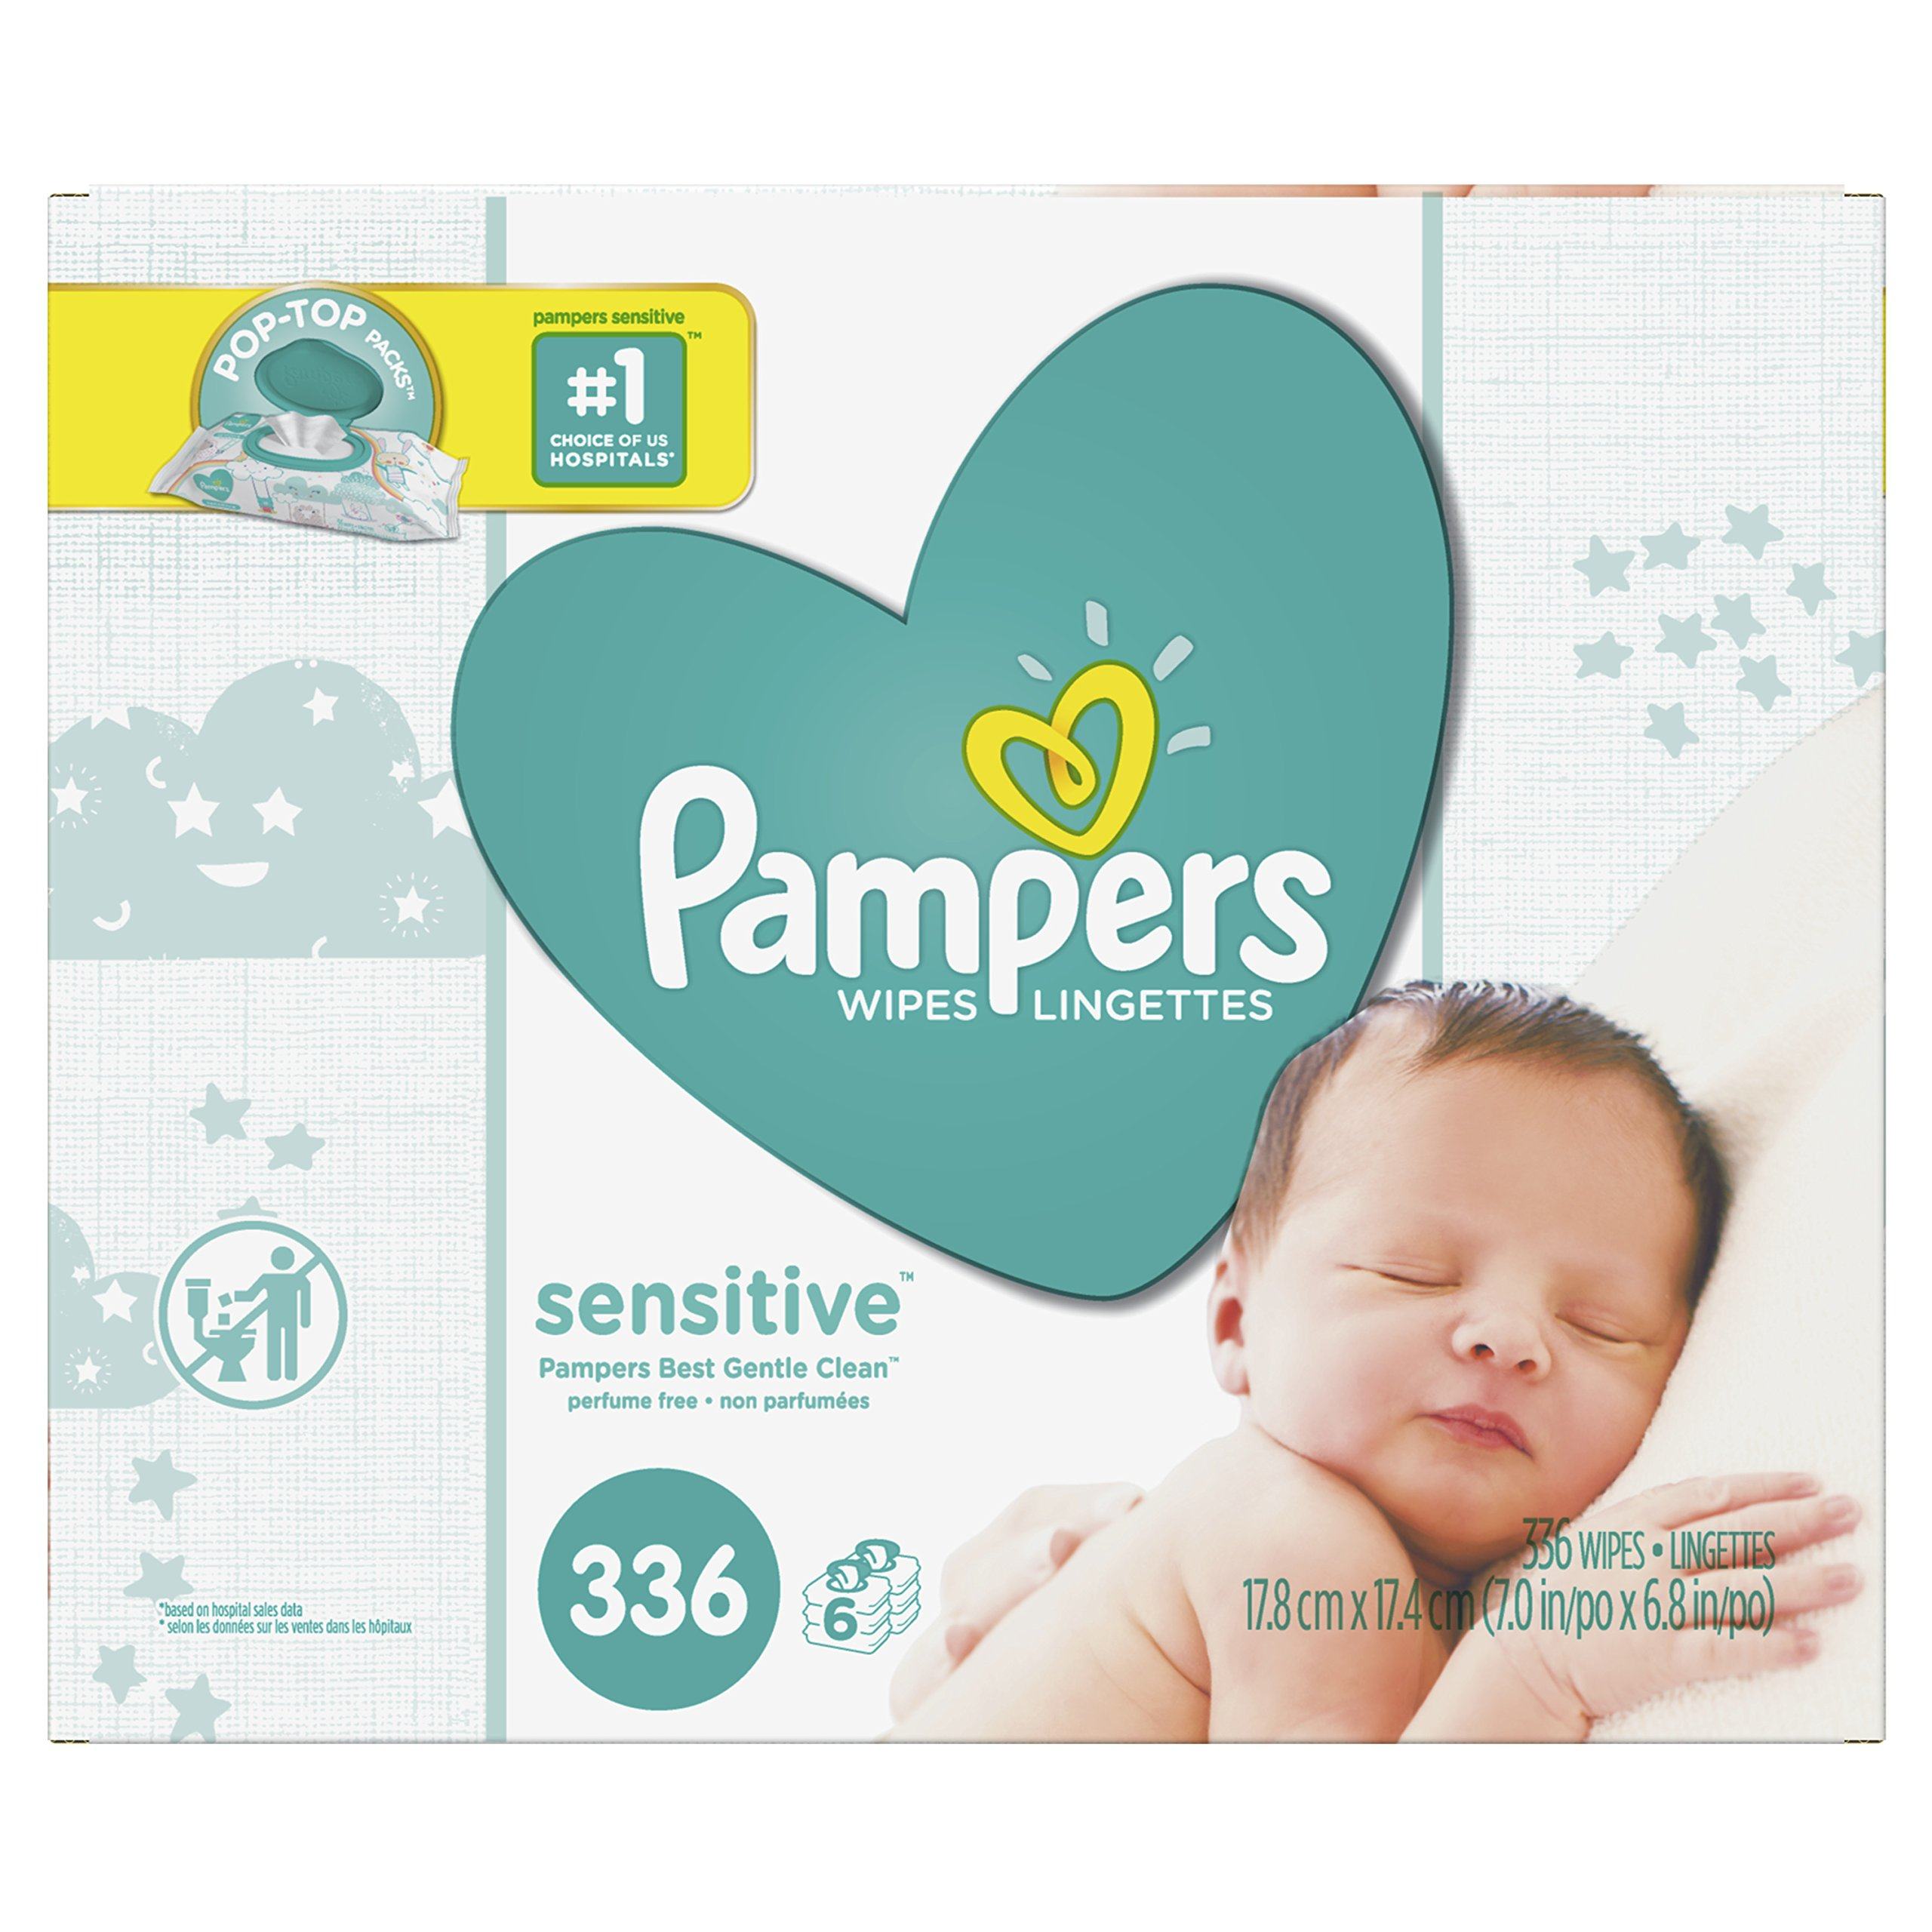 Baby Wipes, Pampers Sensitive Water Baby Diaper Wipes, Hypoallergenic & Unscented, 6X Pop-Top Pack, 336 Total Wipes by Pampers